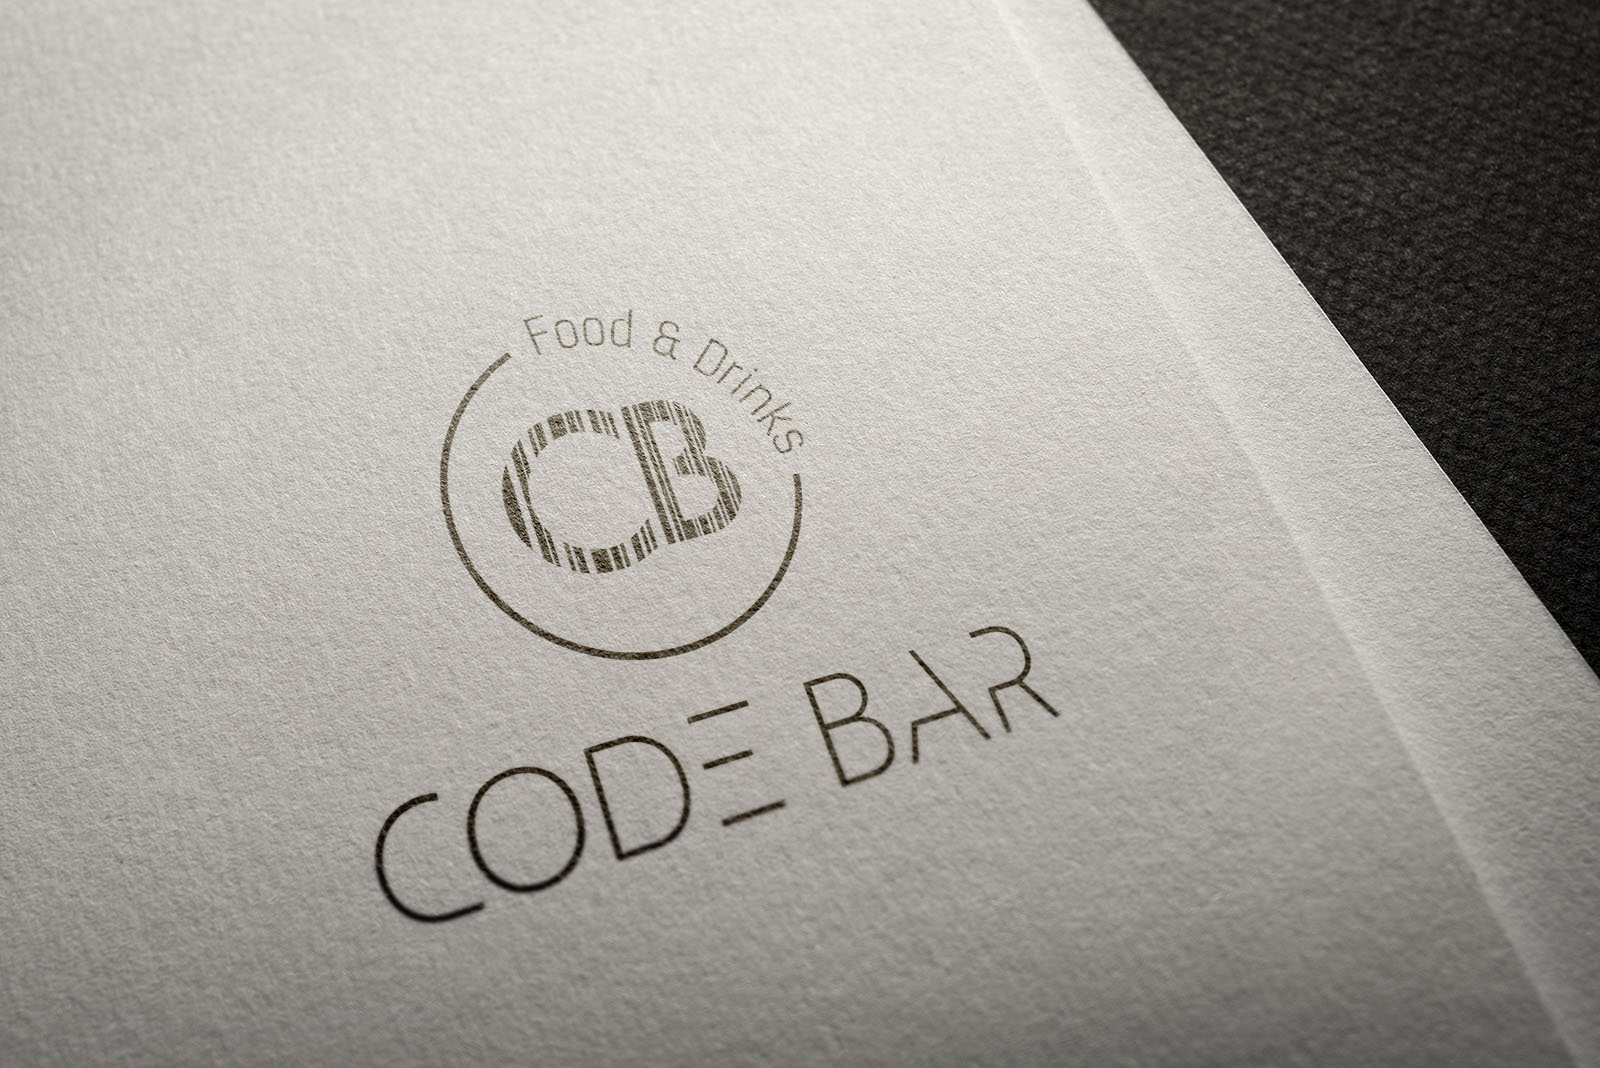 Logo for a coffe